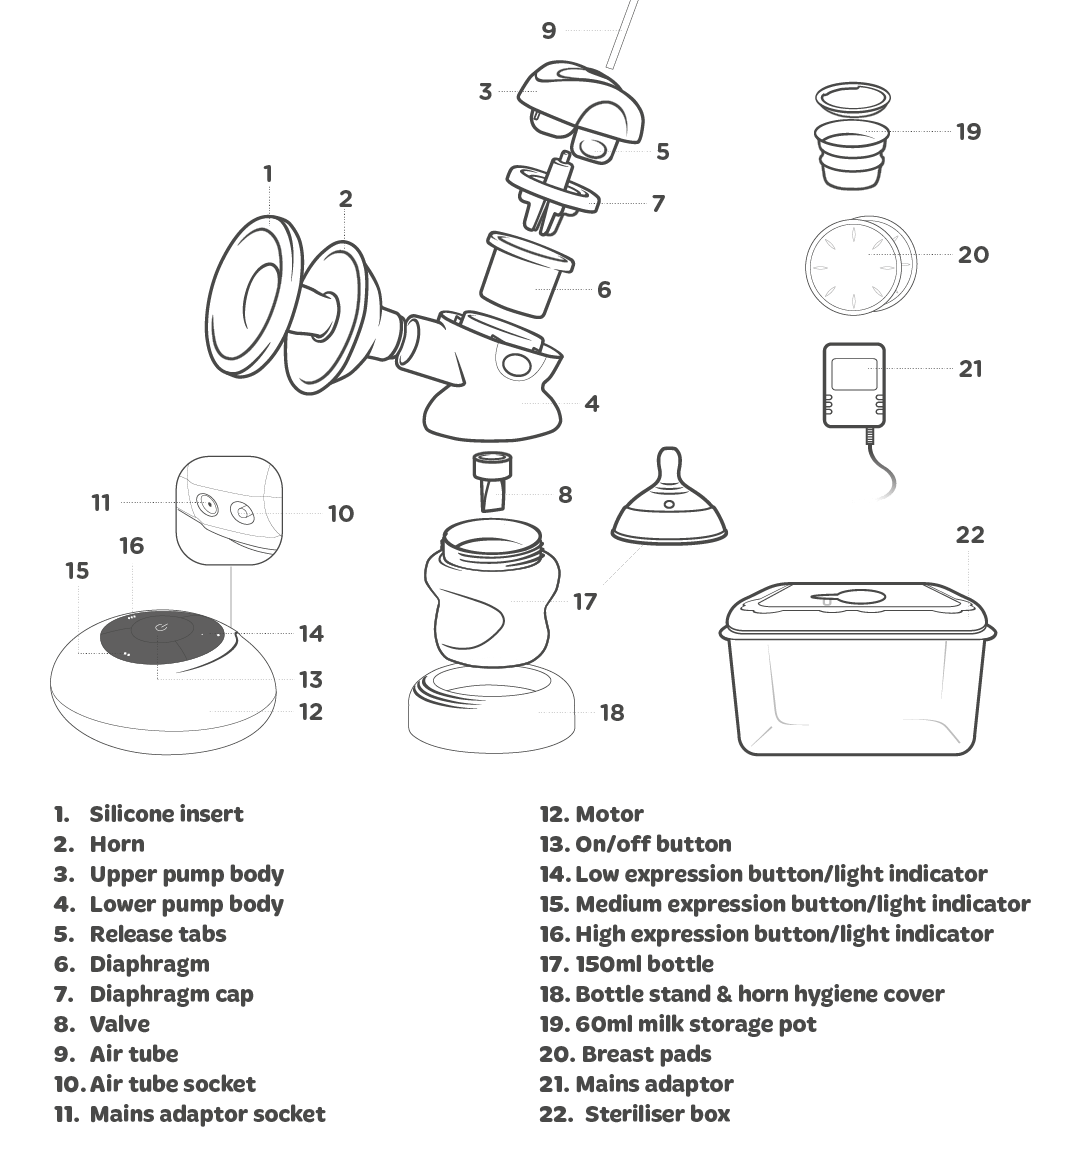 electric breast pump parts guide [ 1067 x 1154 Pixel ]